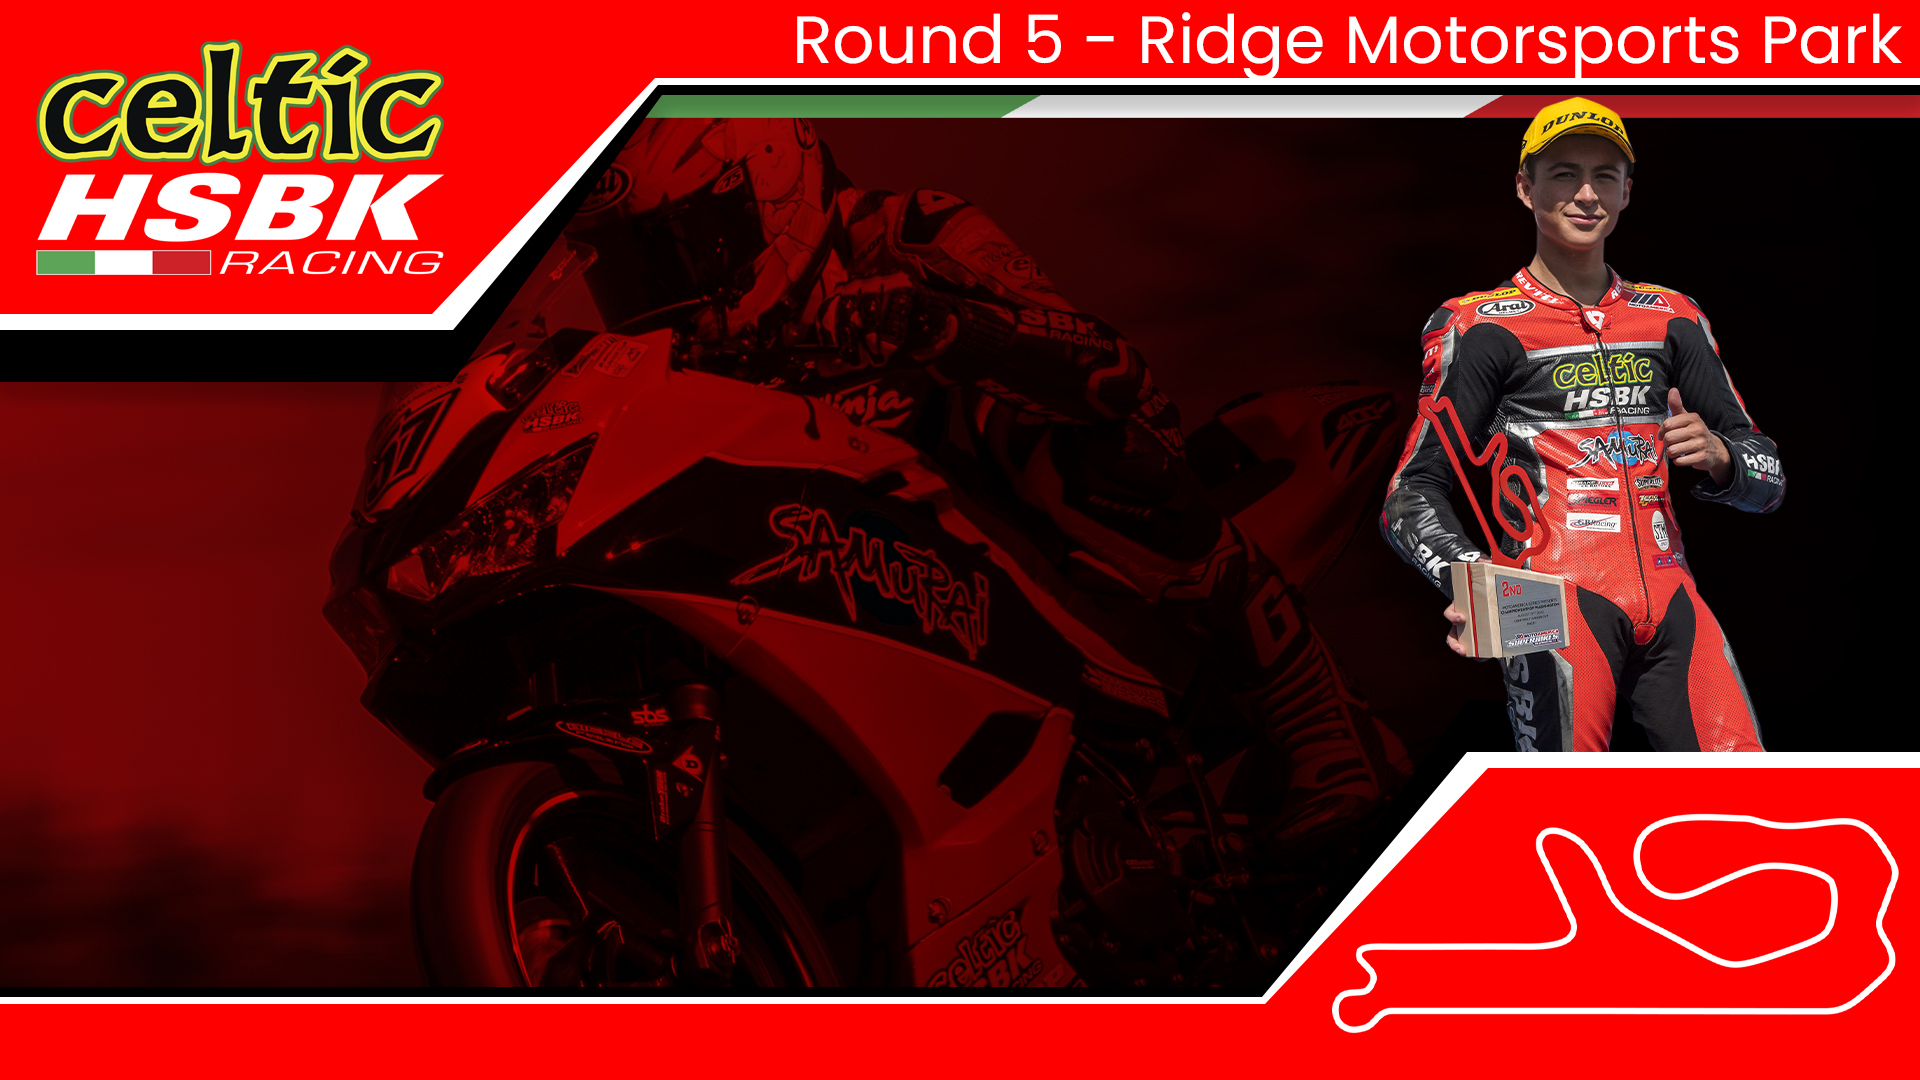 Celtic HSBK Racing Sam Lochoff is ready for the top step at The Ridge (2020 MotoAmerica Round 5)